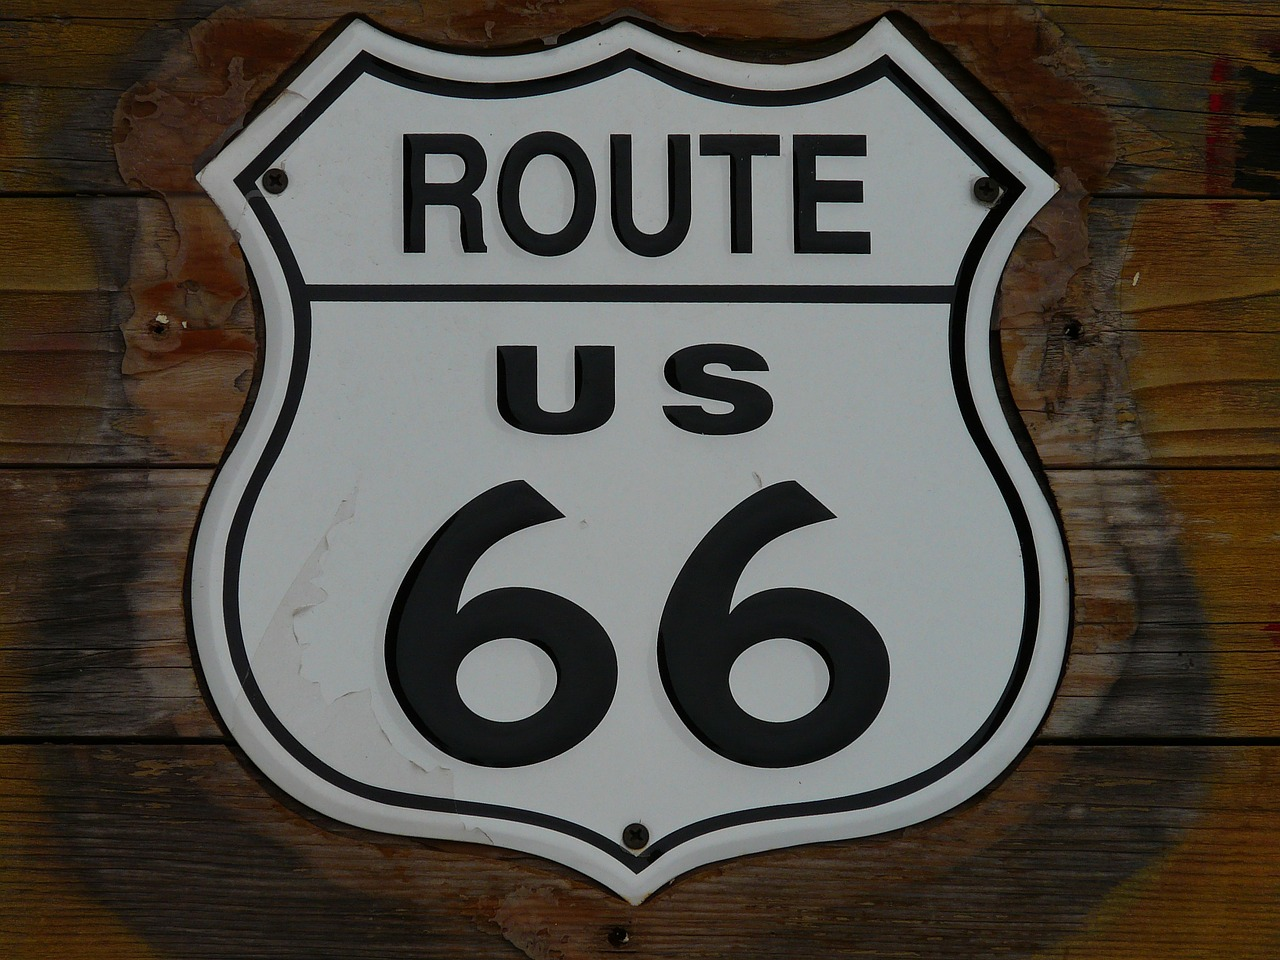 route 66 shield plaque free photo